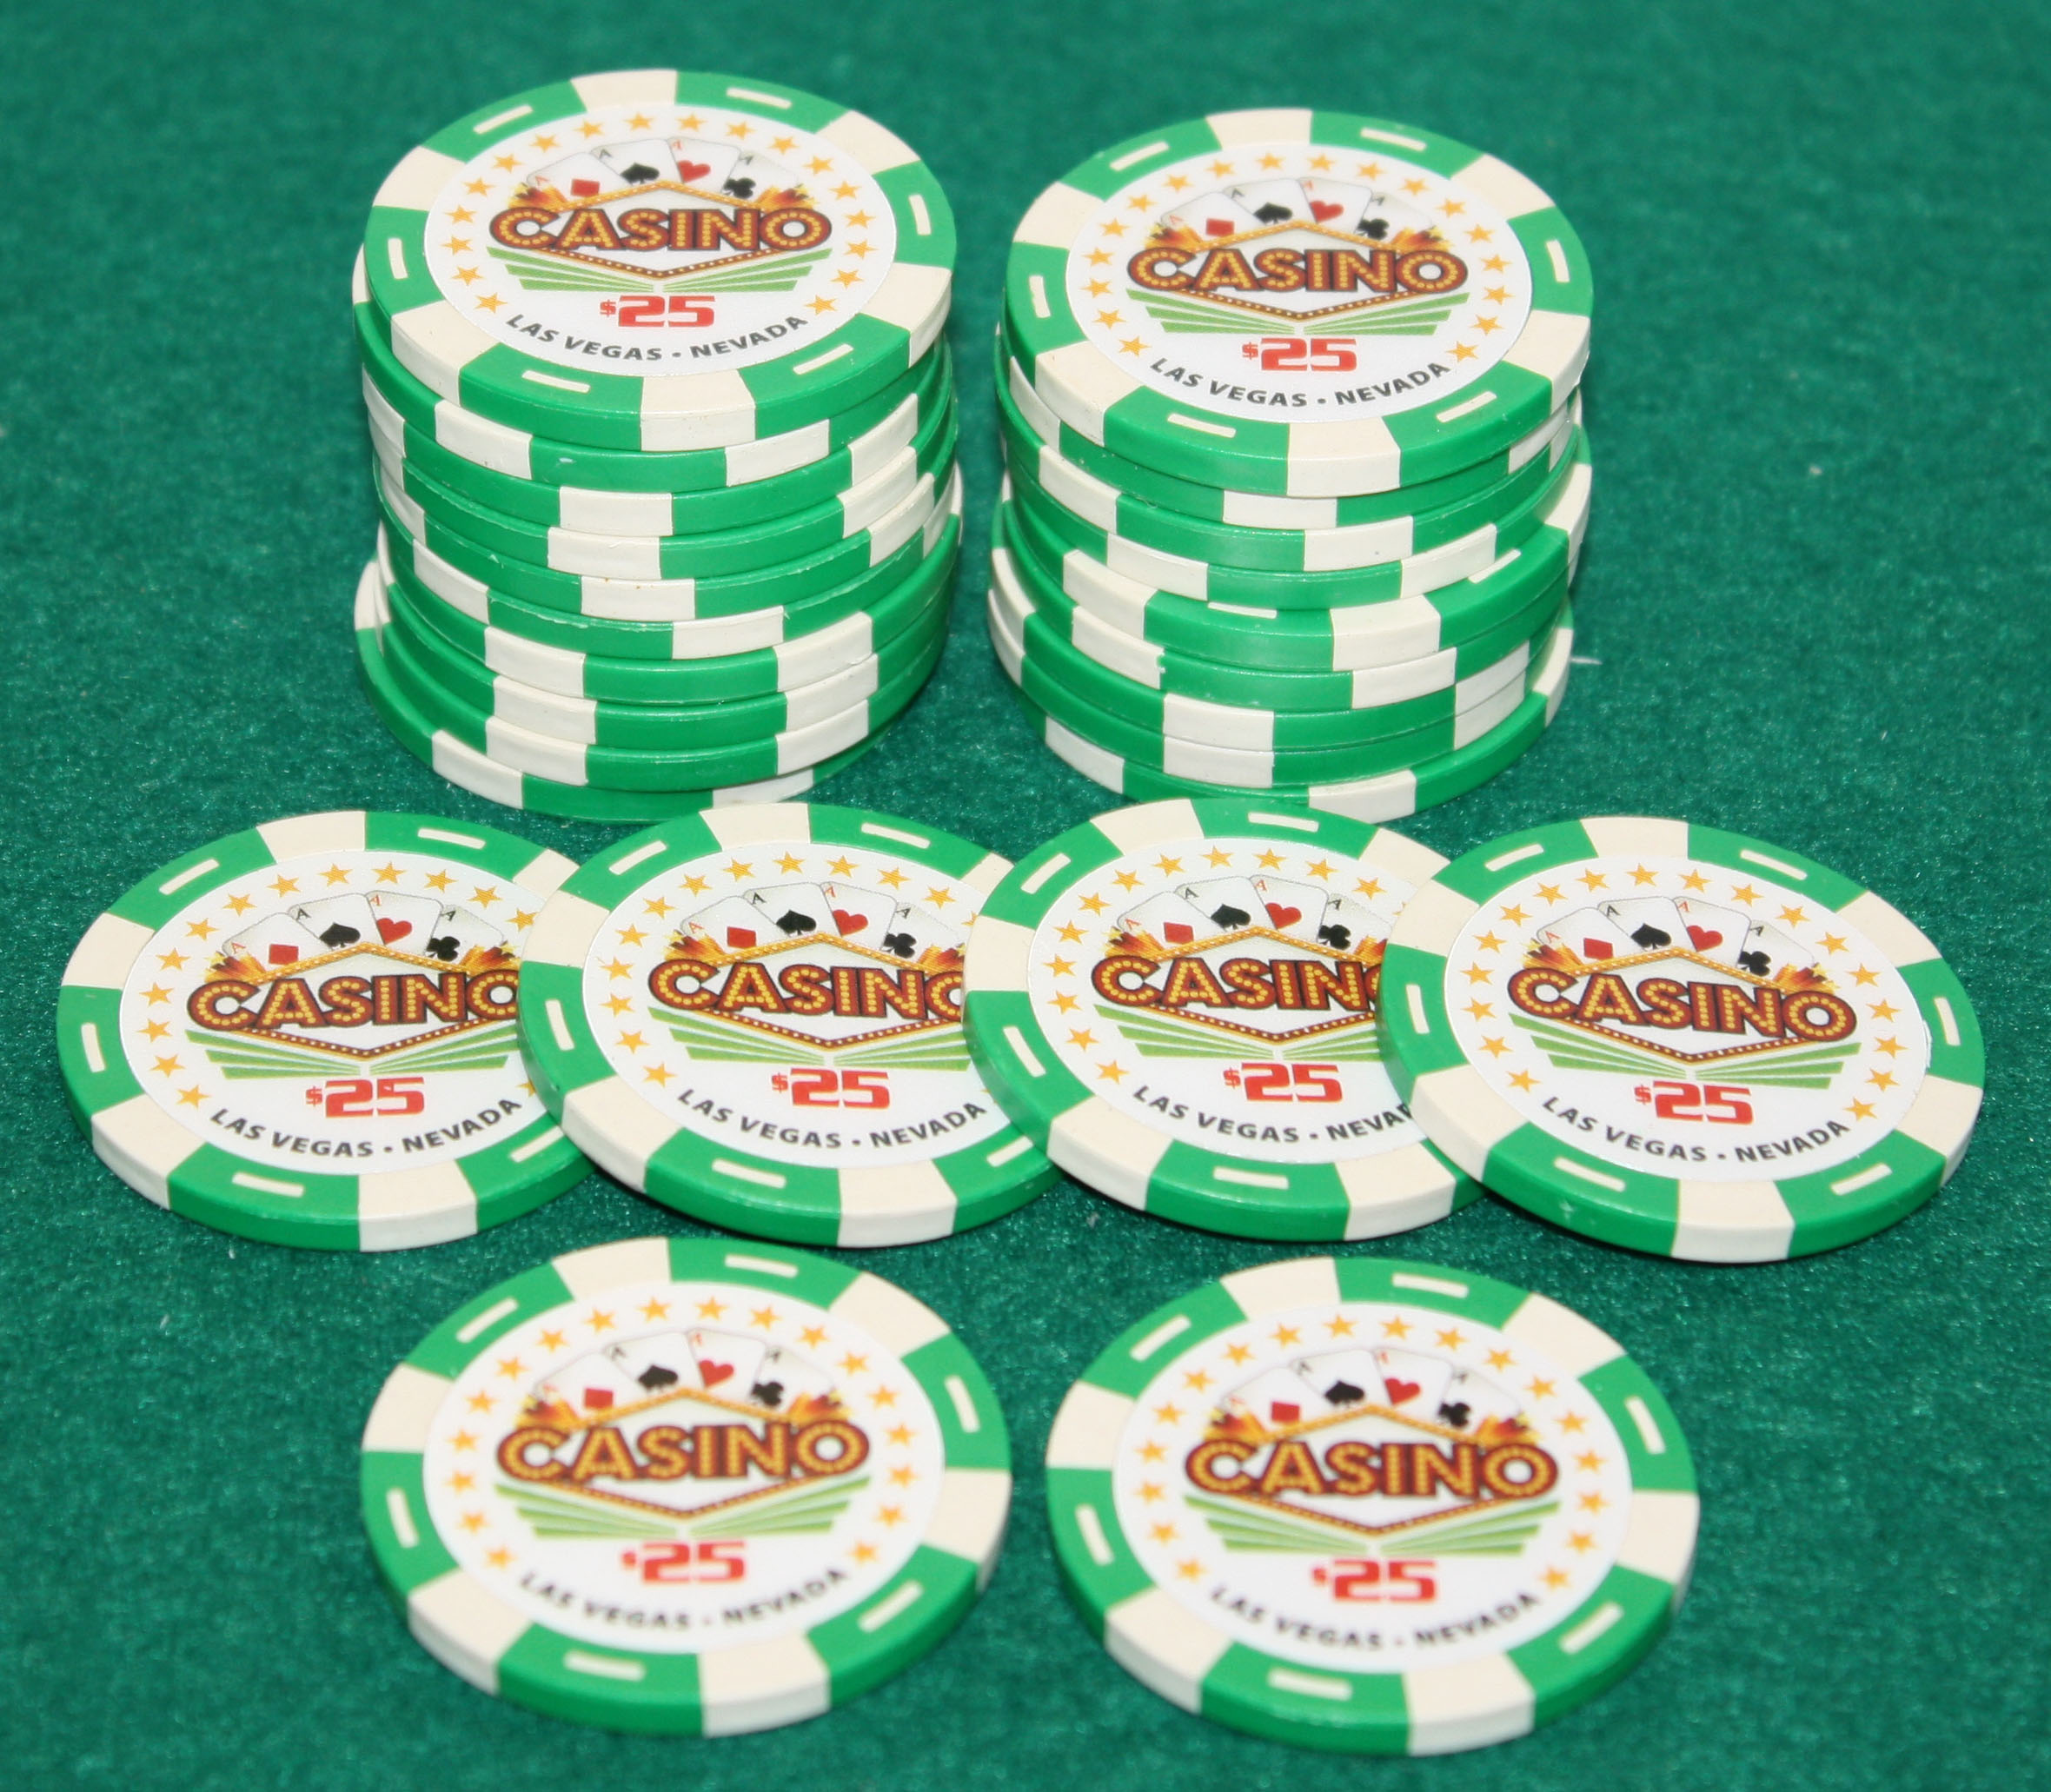 $25 Pro Vegas Casino Chips *Super High Quality* Poker Chip 11.5 Grams (QTY: 25) by